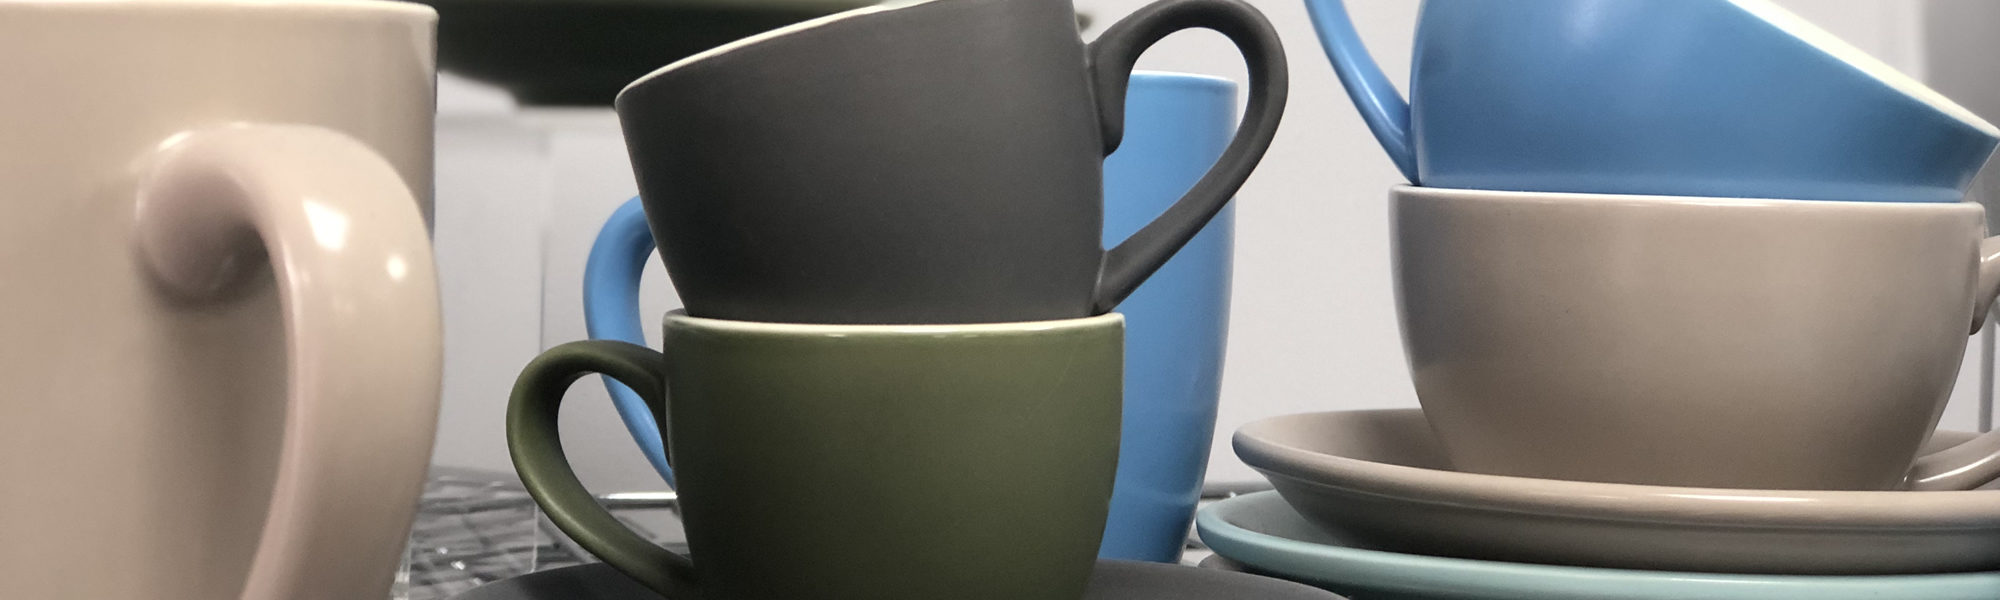 Cups Banner Image